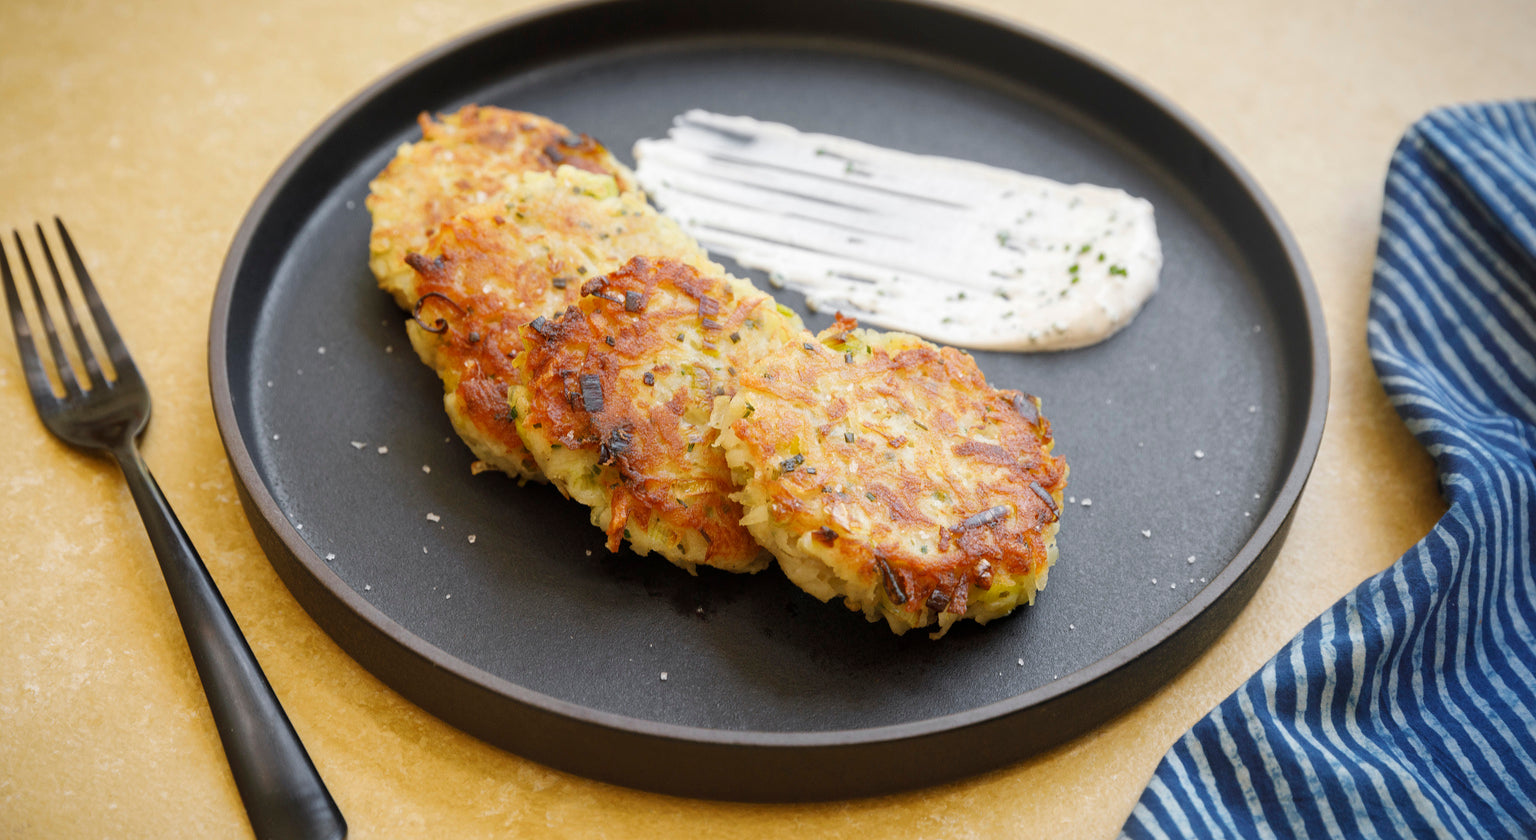 Potato and Leek Latkes with Chive Sour Cream